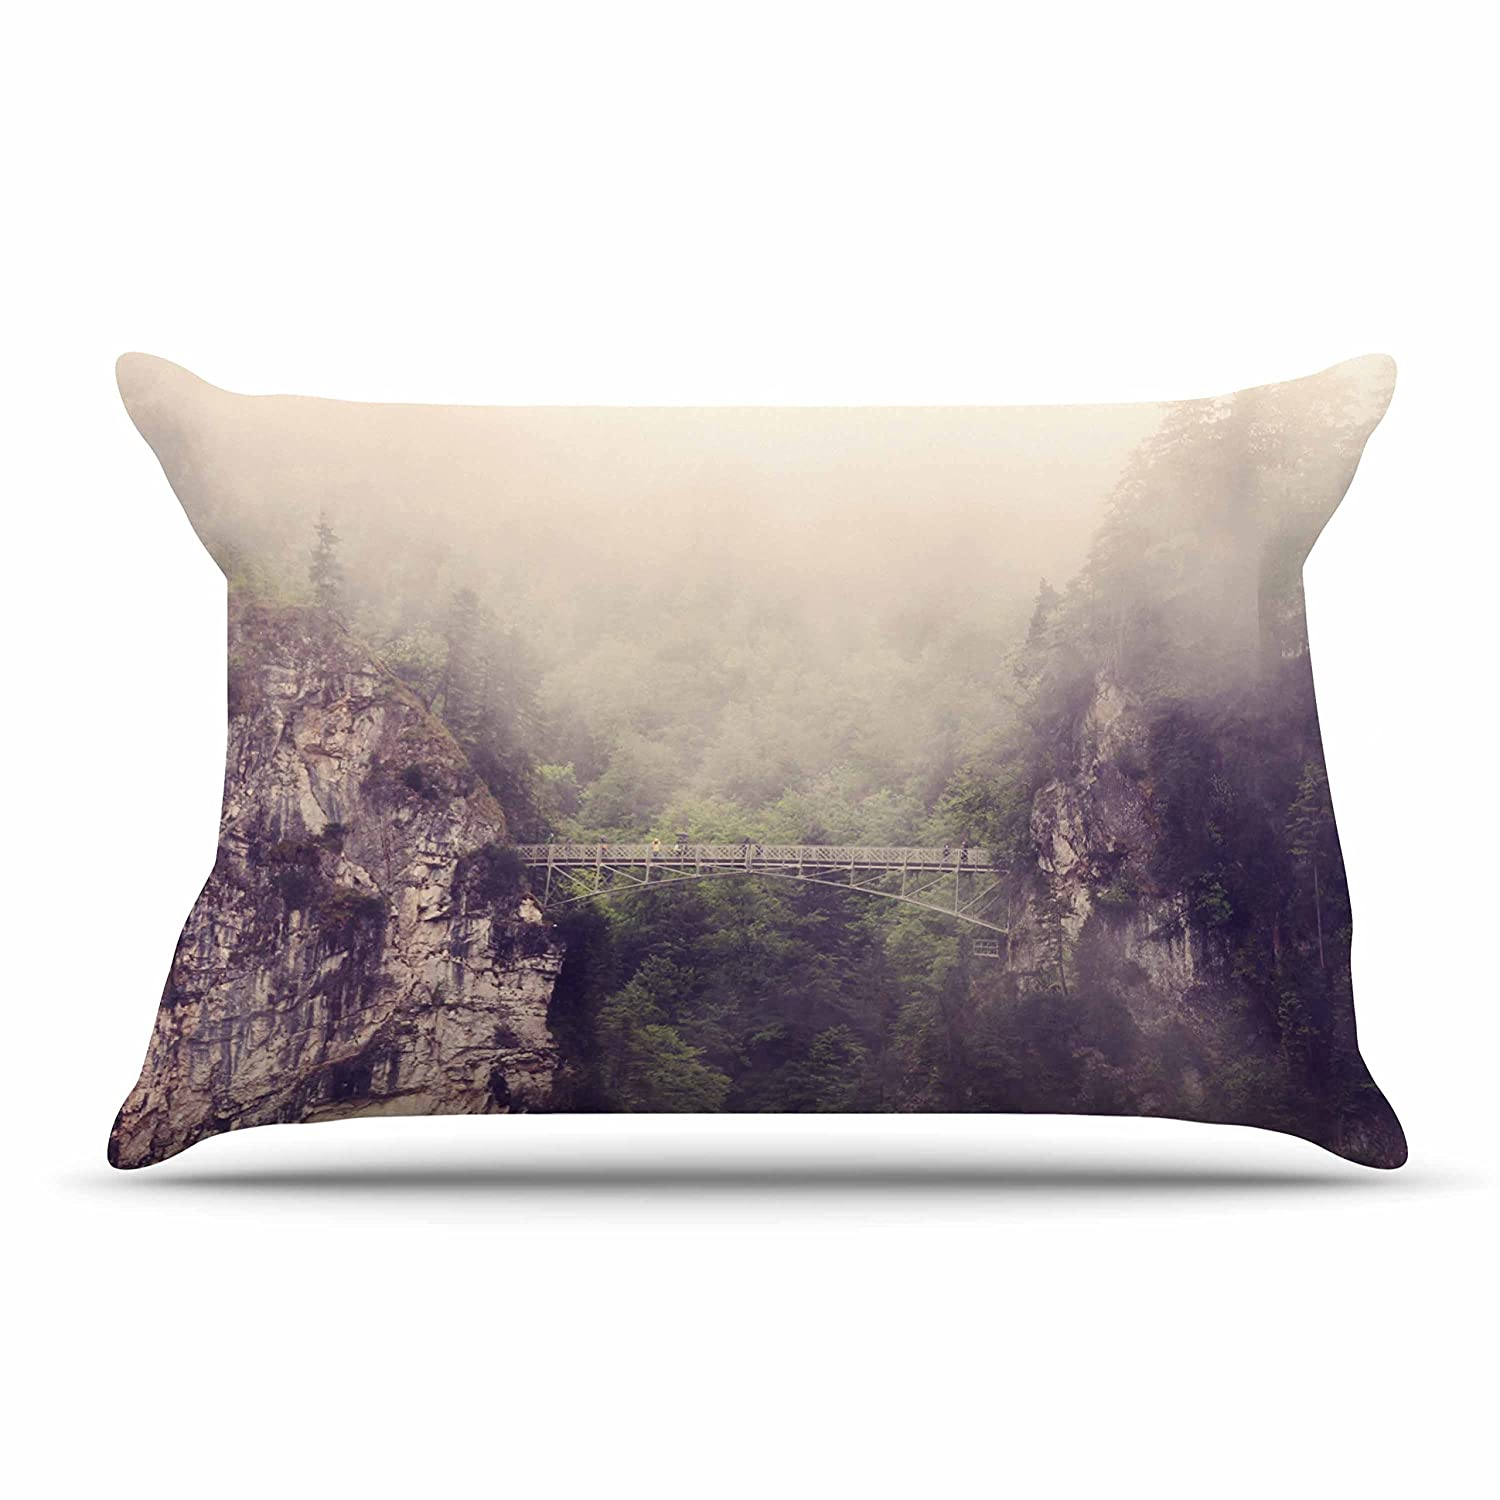 Kess InHouse Sylvia Coomes Foggy Mountain Landscape Brown Green Standard Pillow Case, 30 by 20-Inch, 30' X 20'